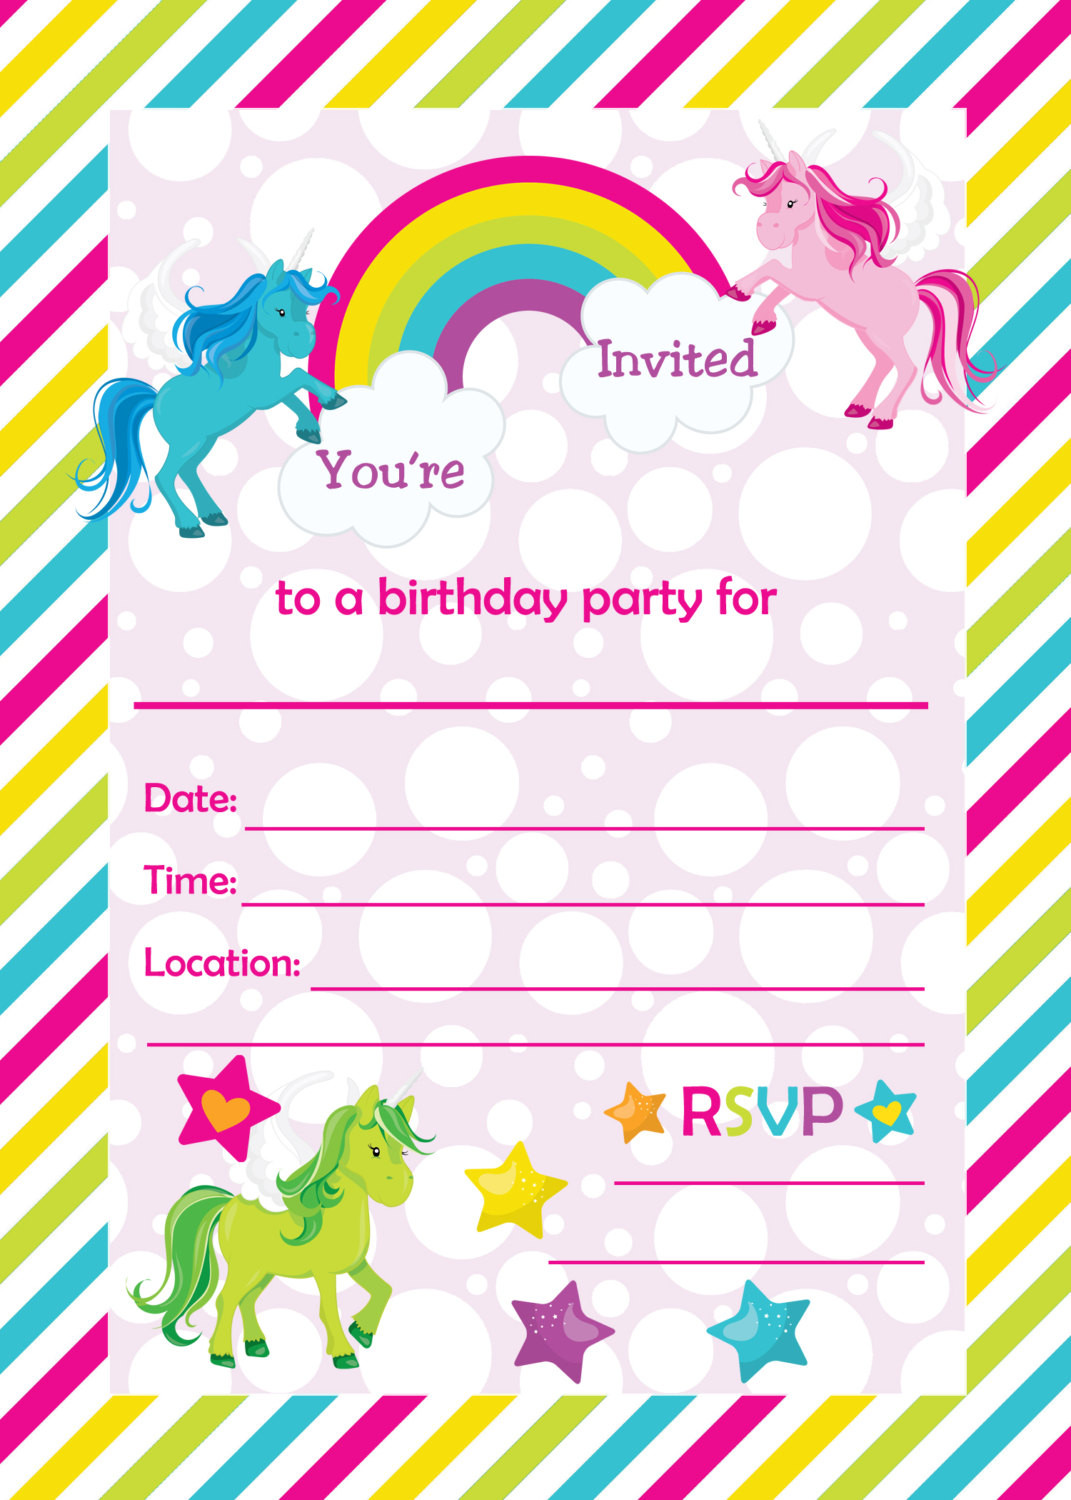 Best ideas about Birthday Party Invitations Free . Save or Pin FREE Printable Golden Unicorn Birthday Invitation Template Now.